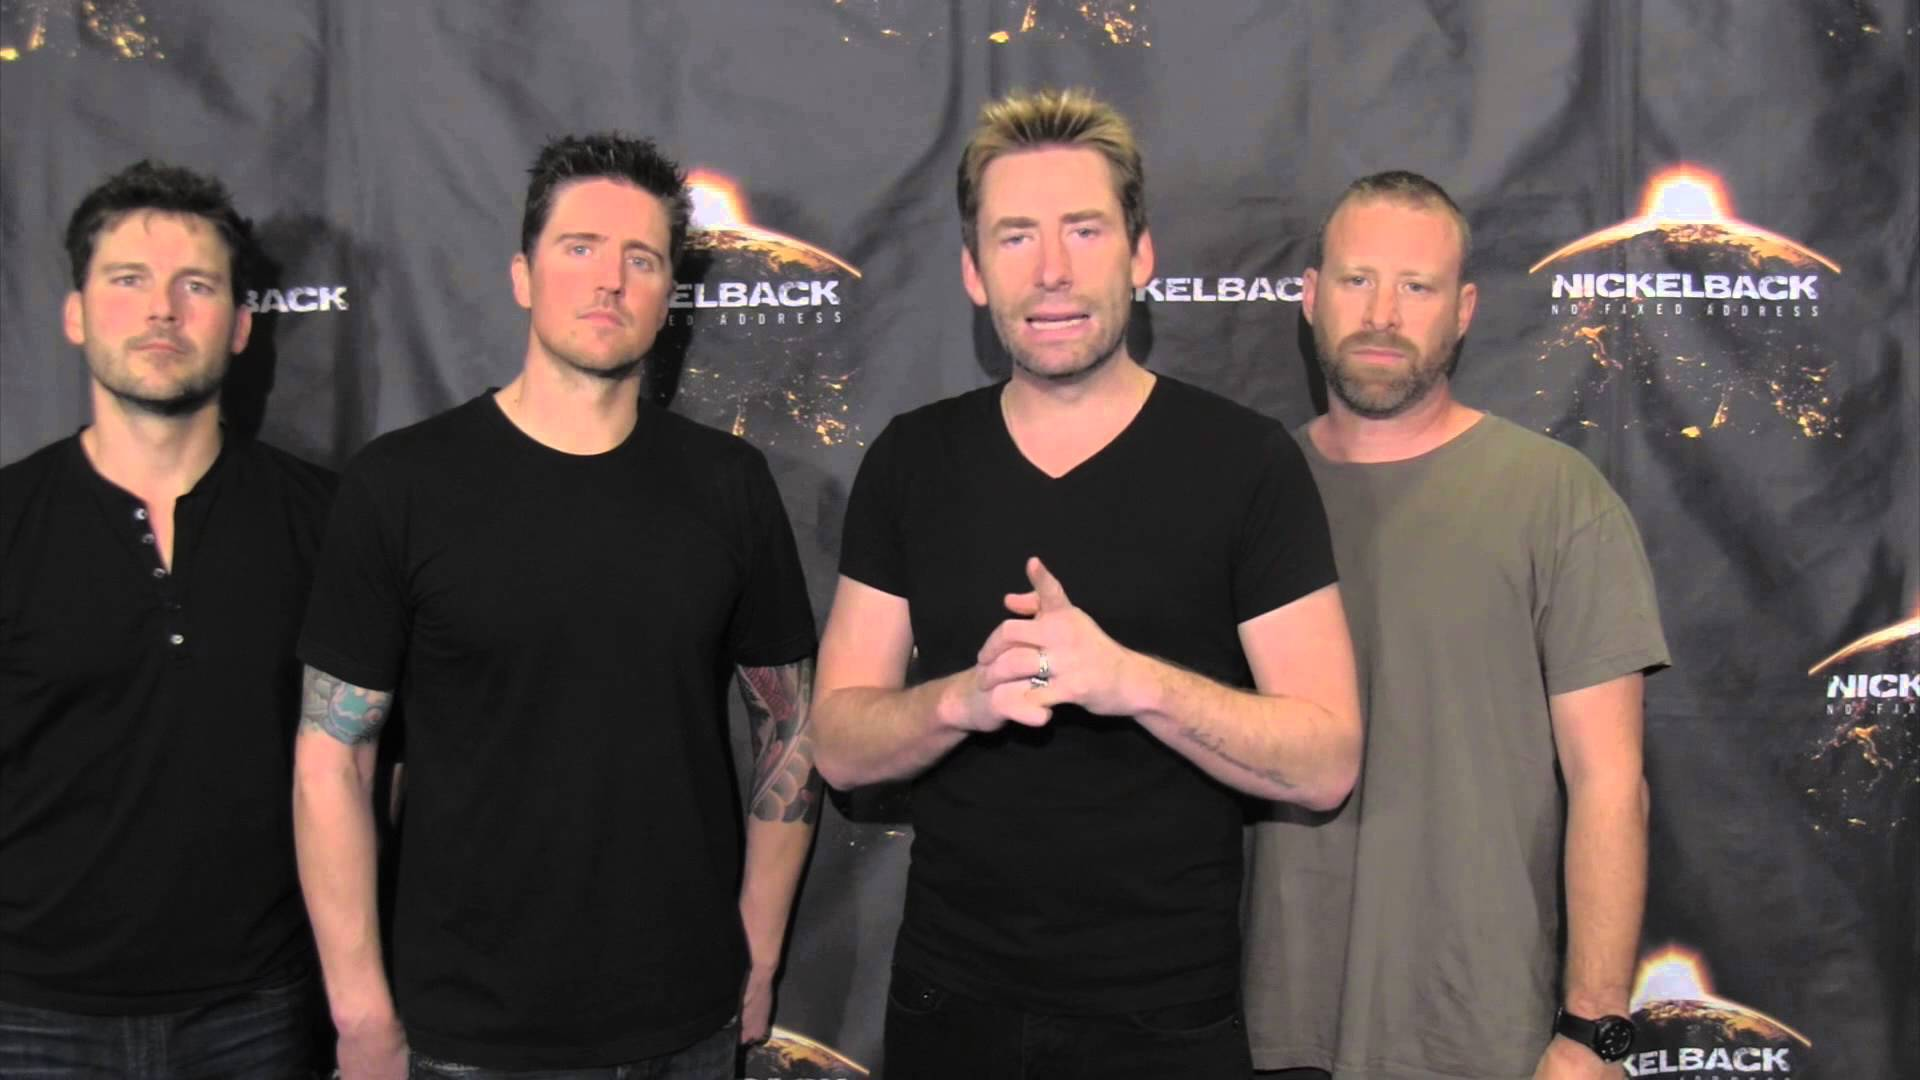 Nickelback Computer Wallpaper